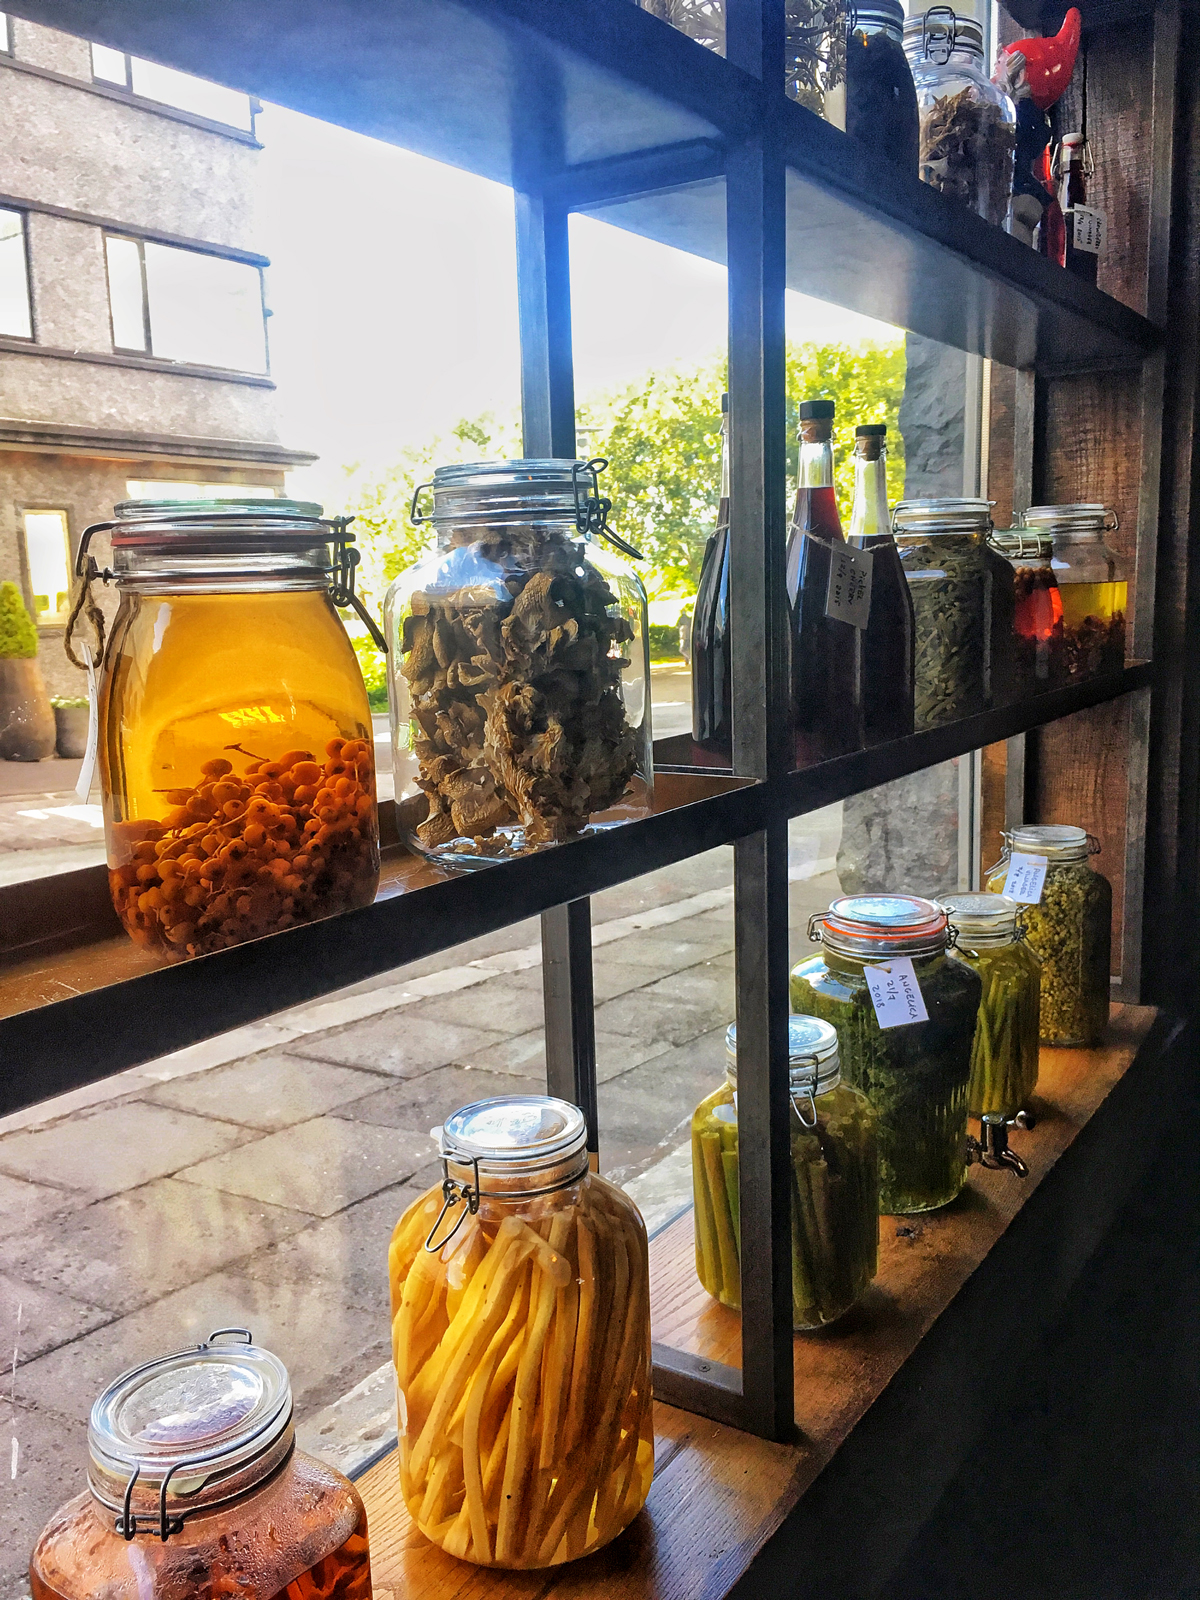 fermented vegetables and herbs displayed in window